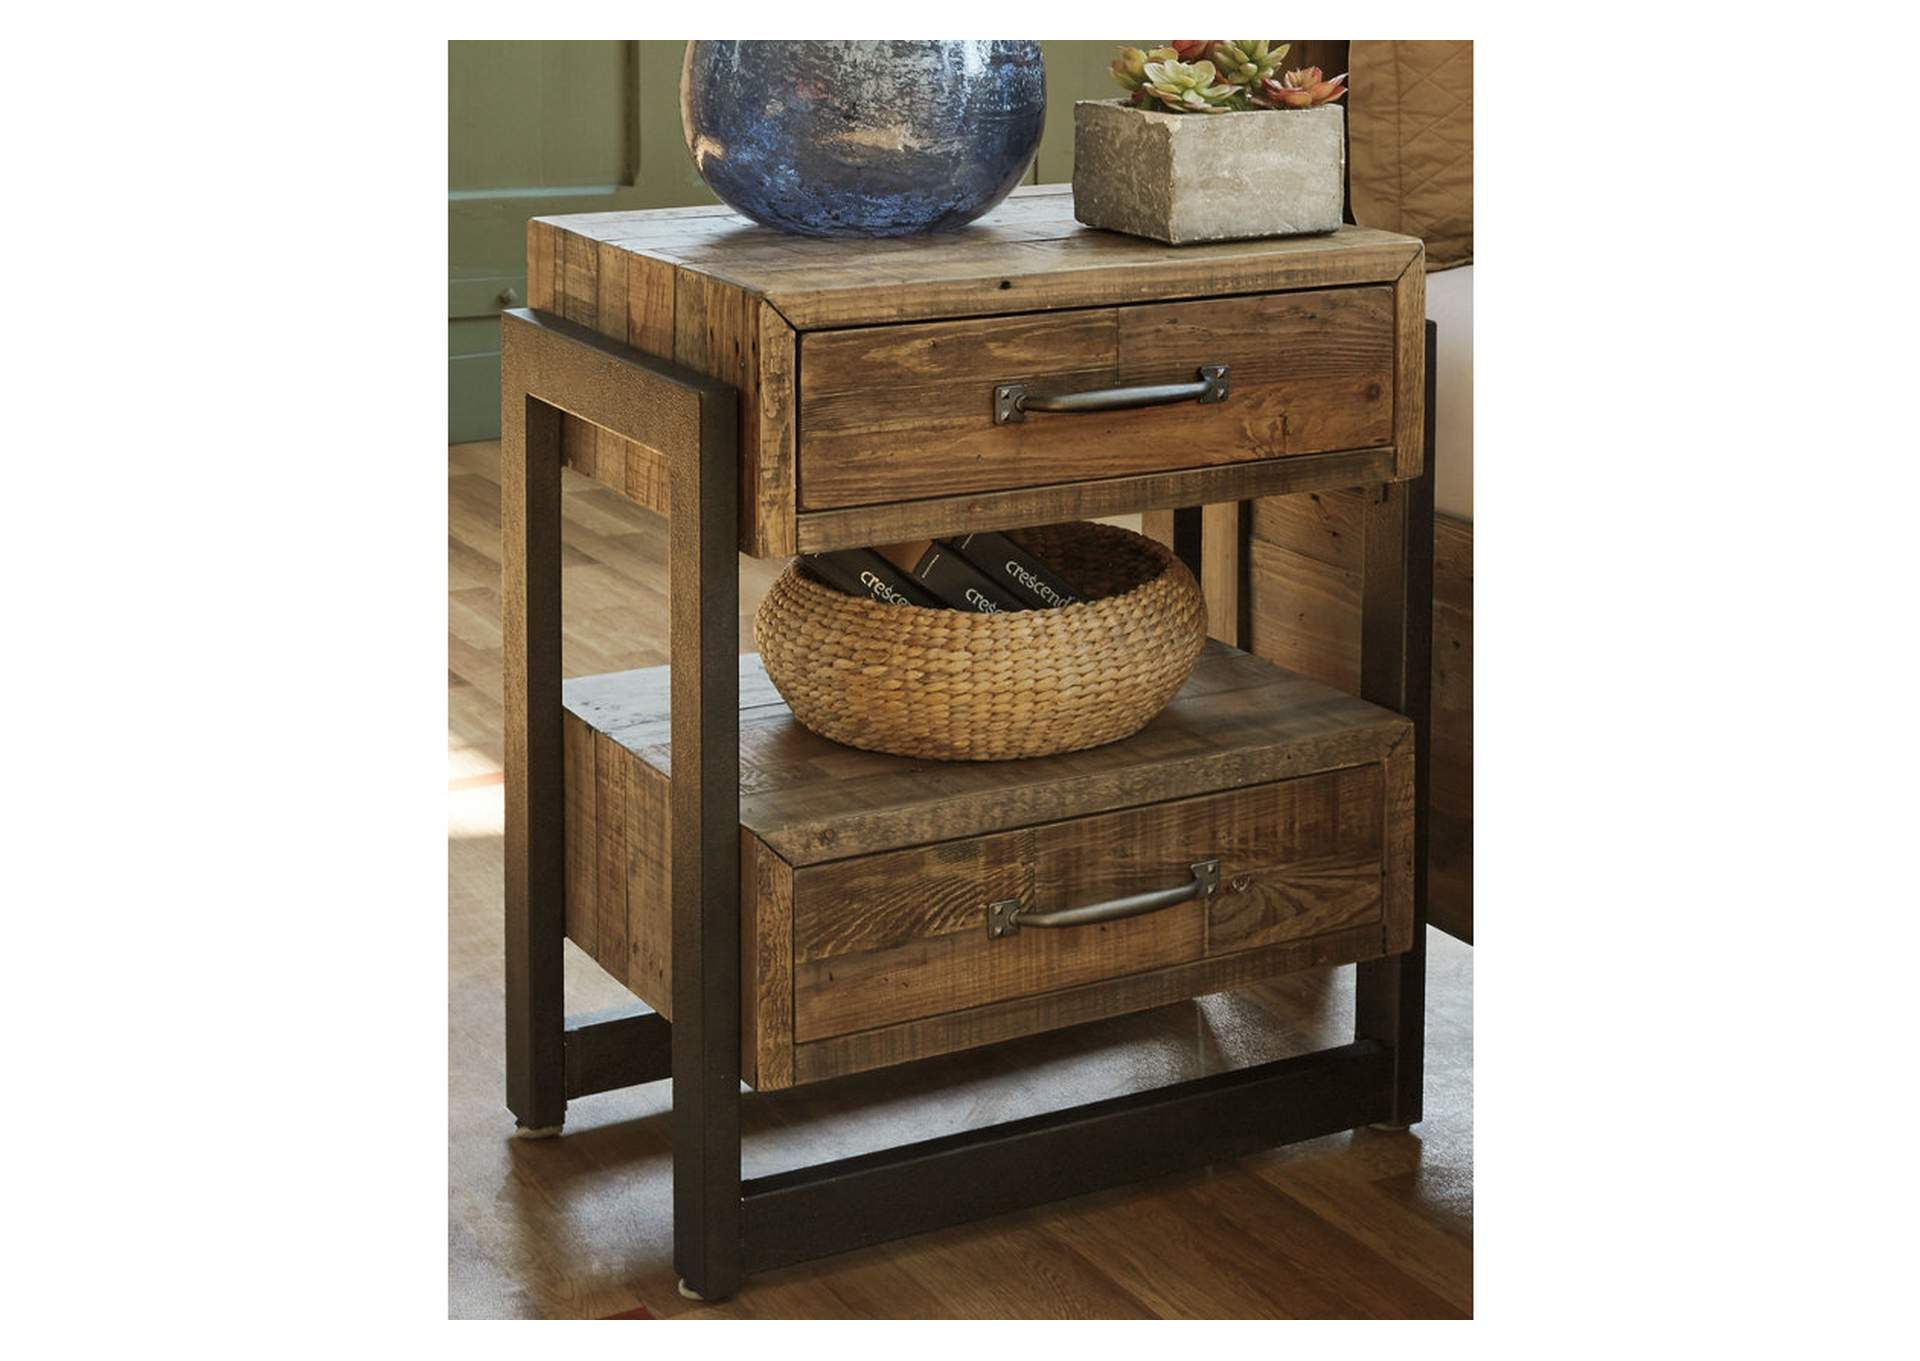 Sommerford Brown Two Drawer Nightstand,48 Hour Quick Ship